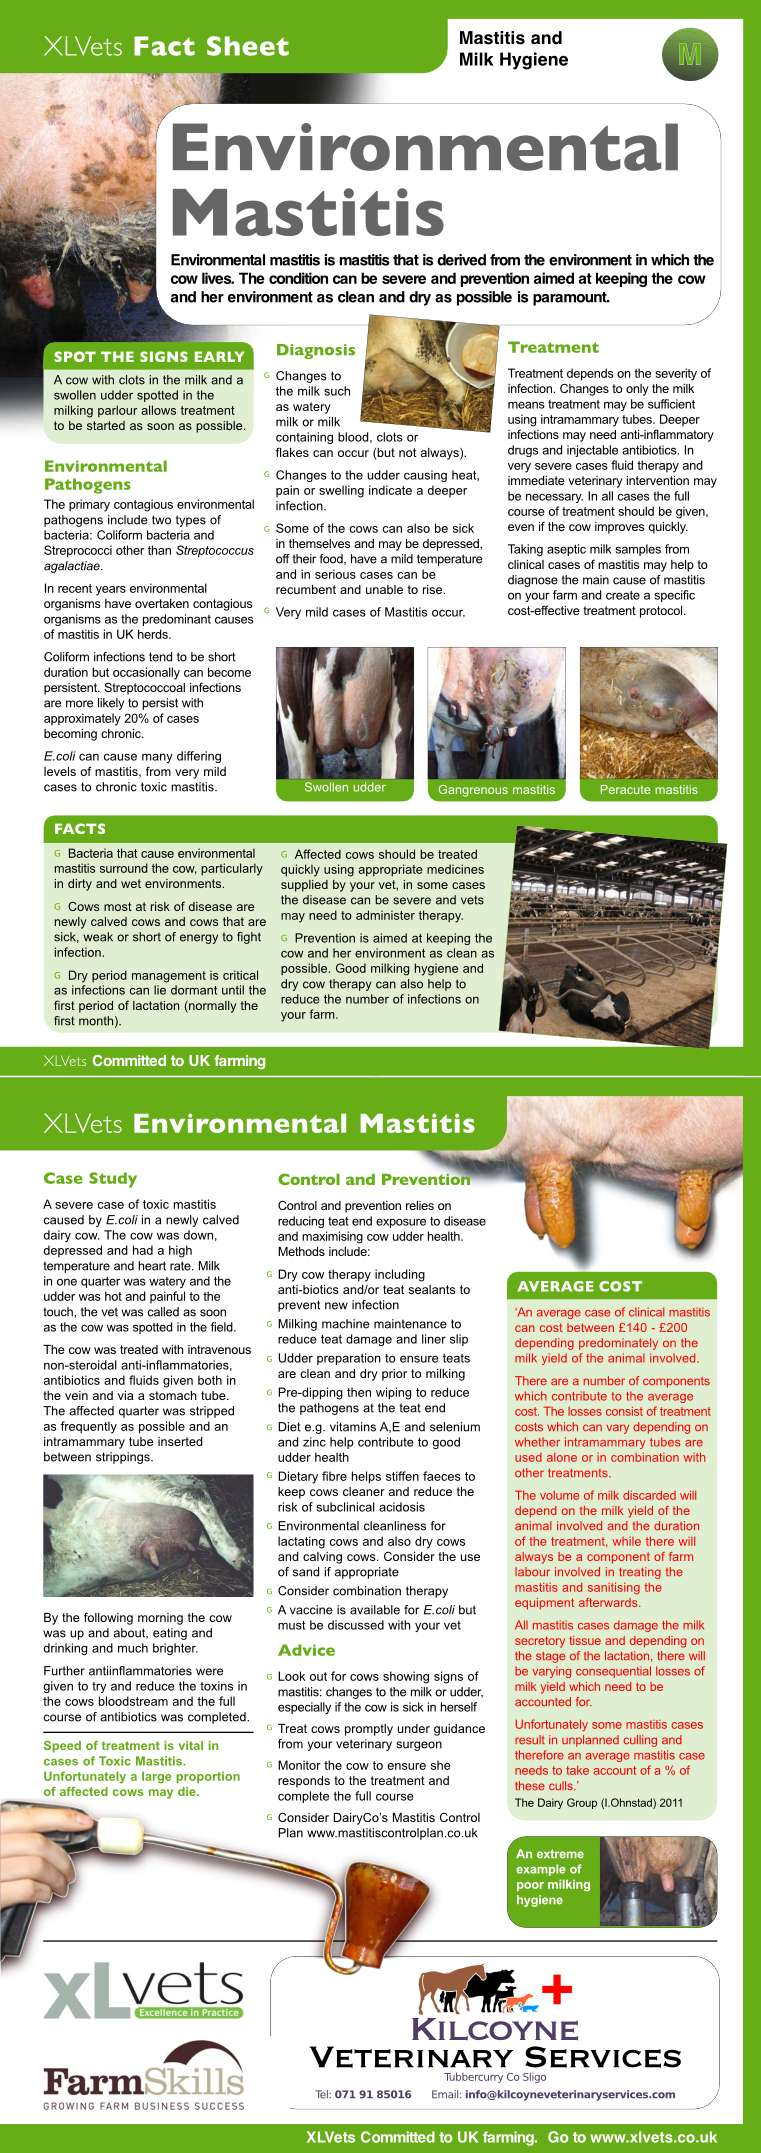 xlvets_environmental_mastitis